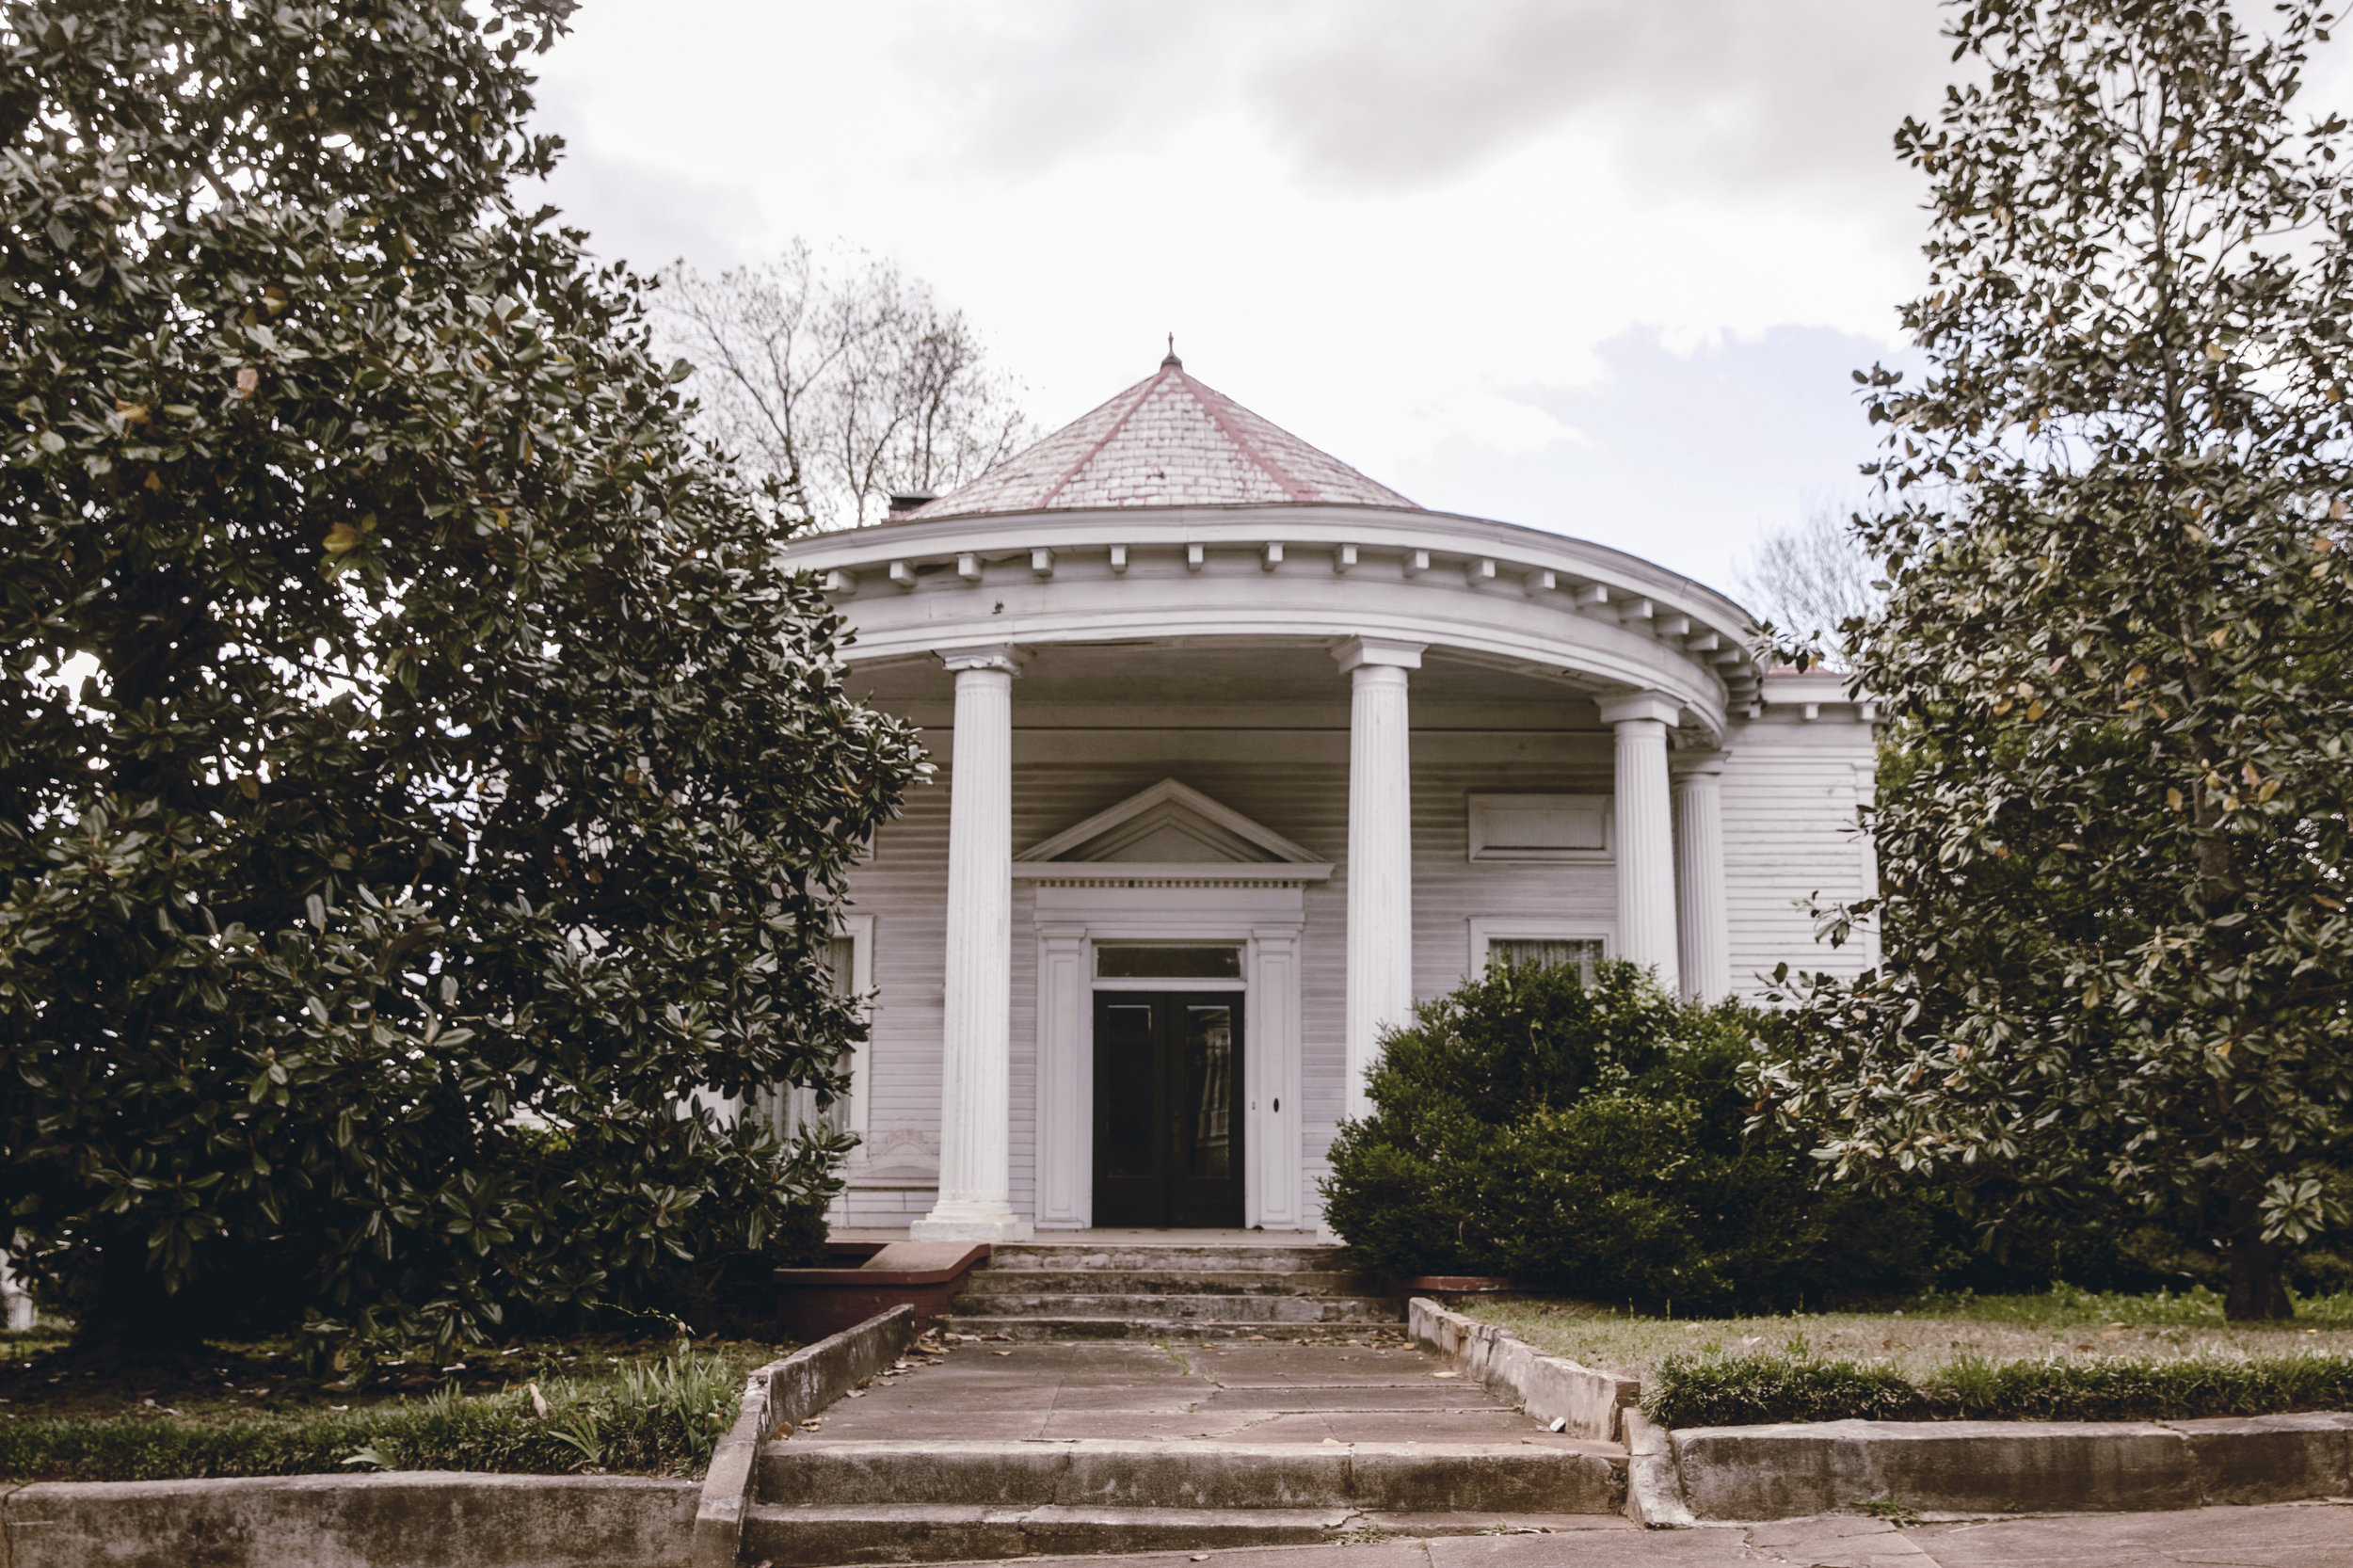 historic home on Monticello GA town square / heirloomed